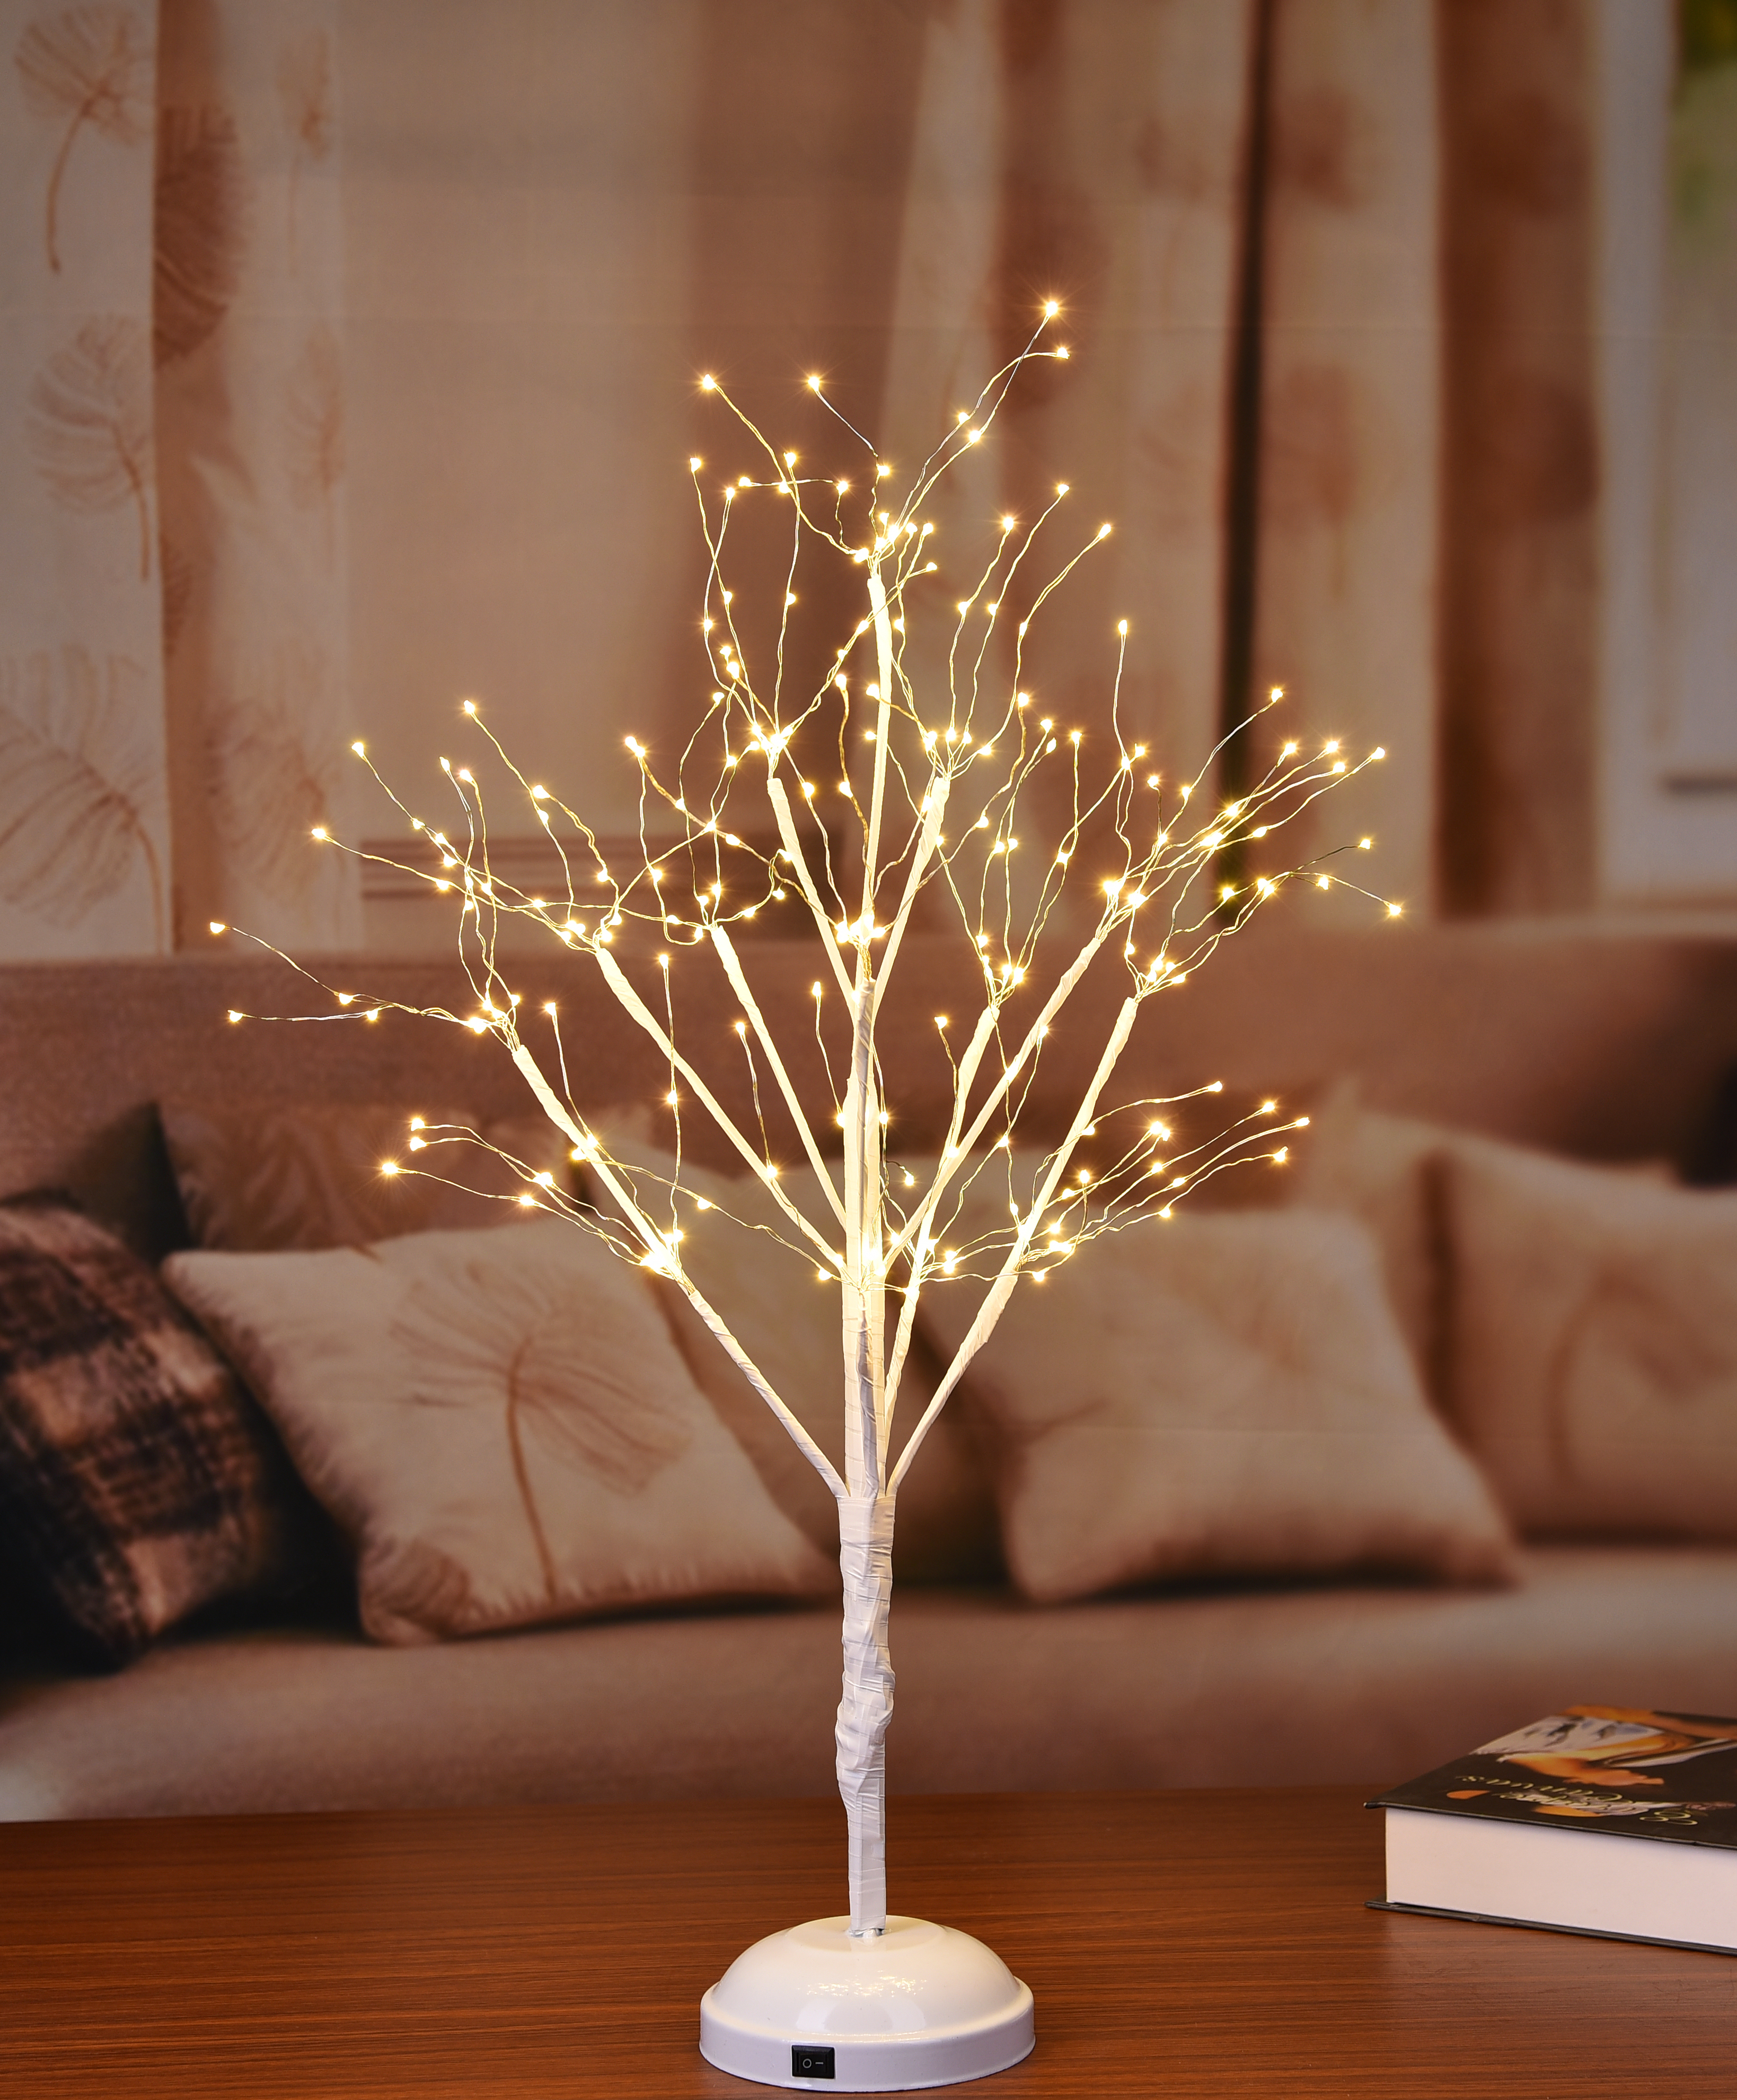 LED TREE WITH WARM WHITE LIGHTS 2'